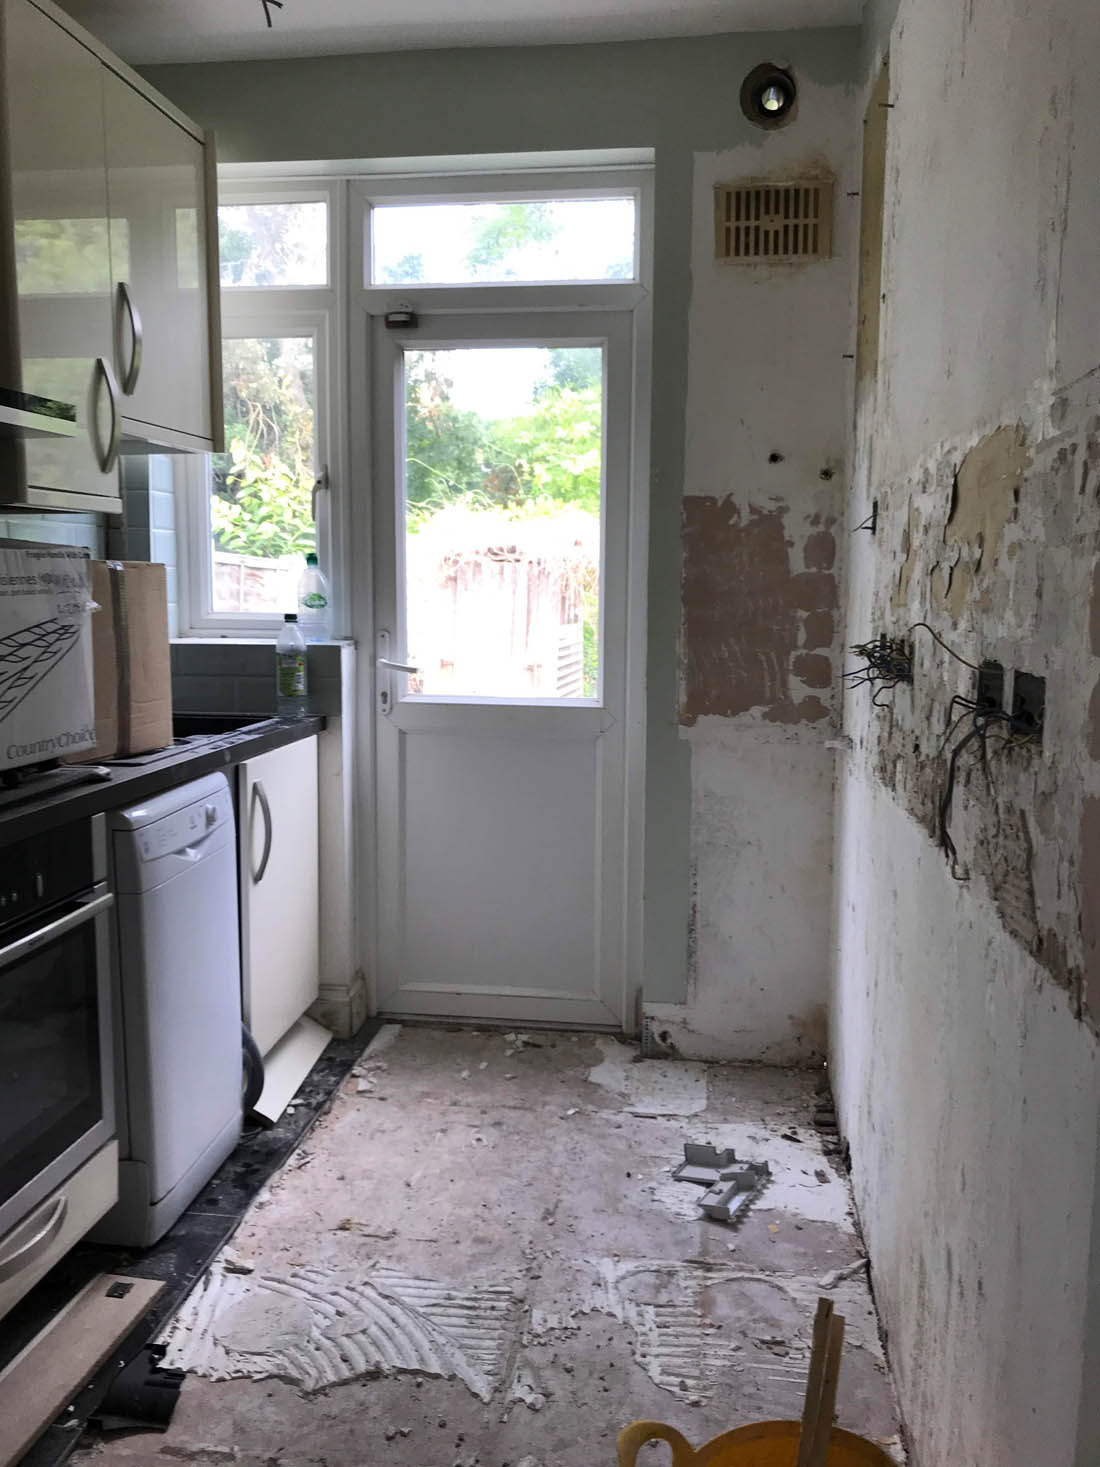 Week one: our house renovations